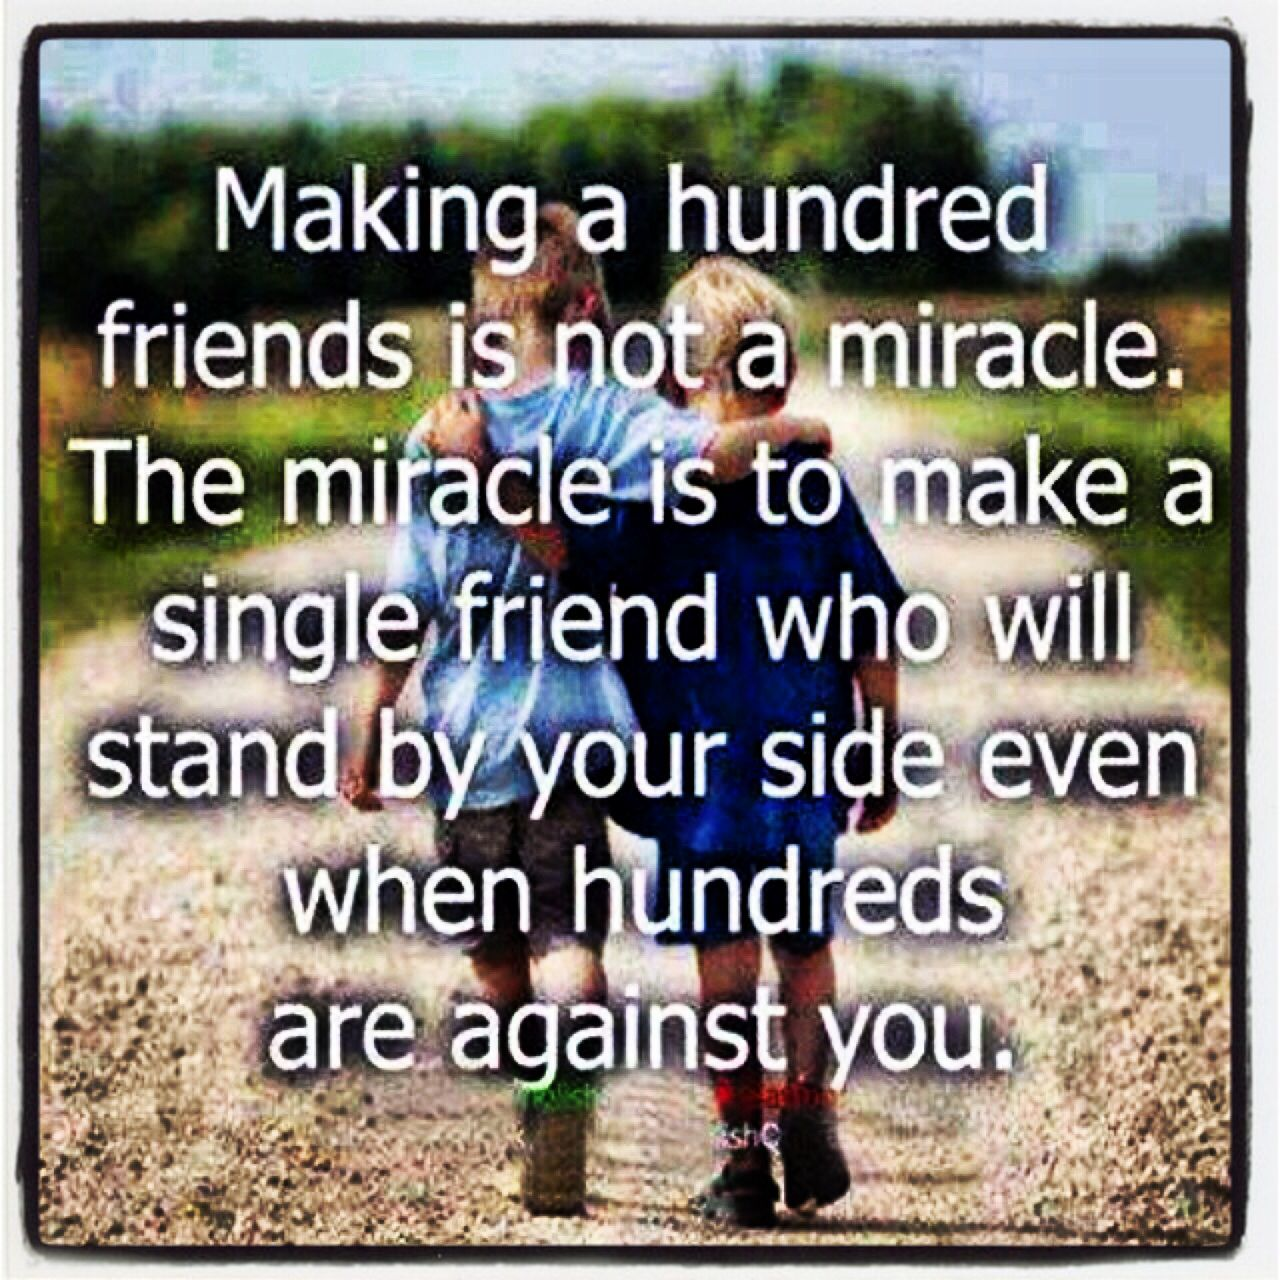 #The miracle to make one single friend who will stand by you. ☝️~